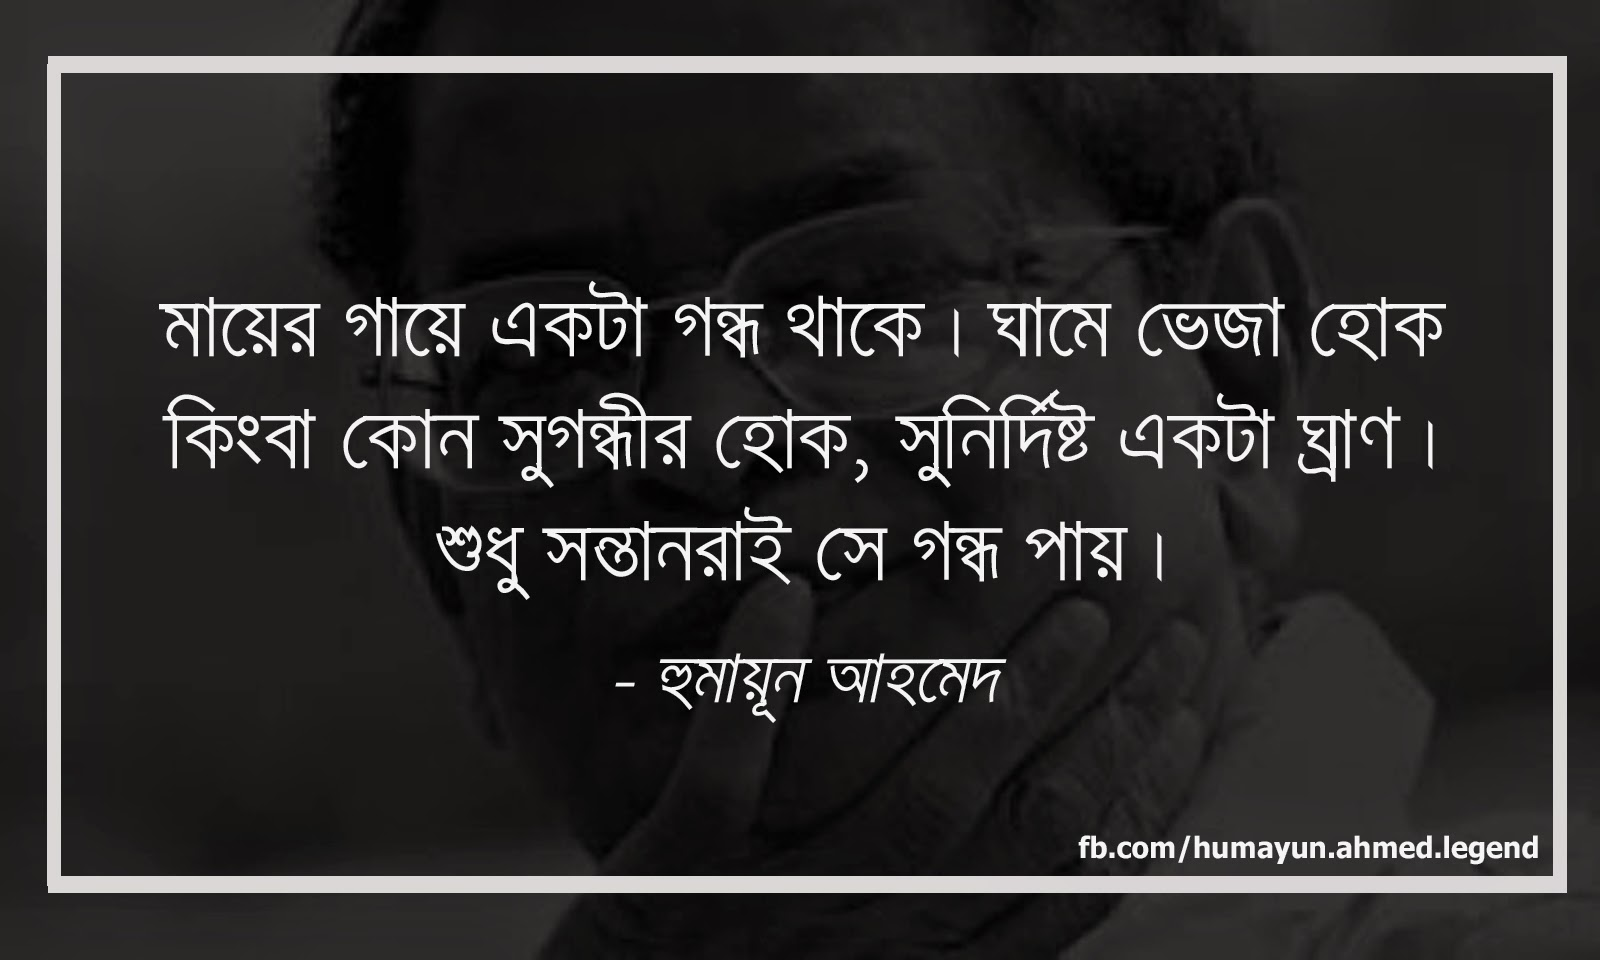 Heroes Saying Humayun Ahmed S Quotes About Mother